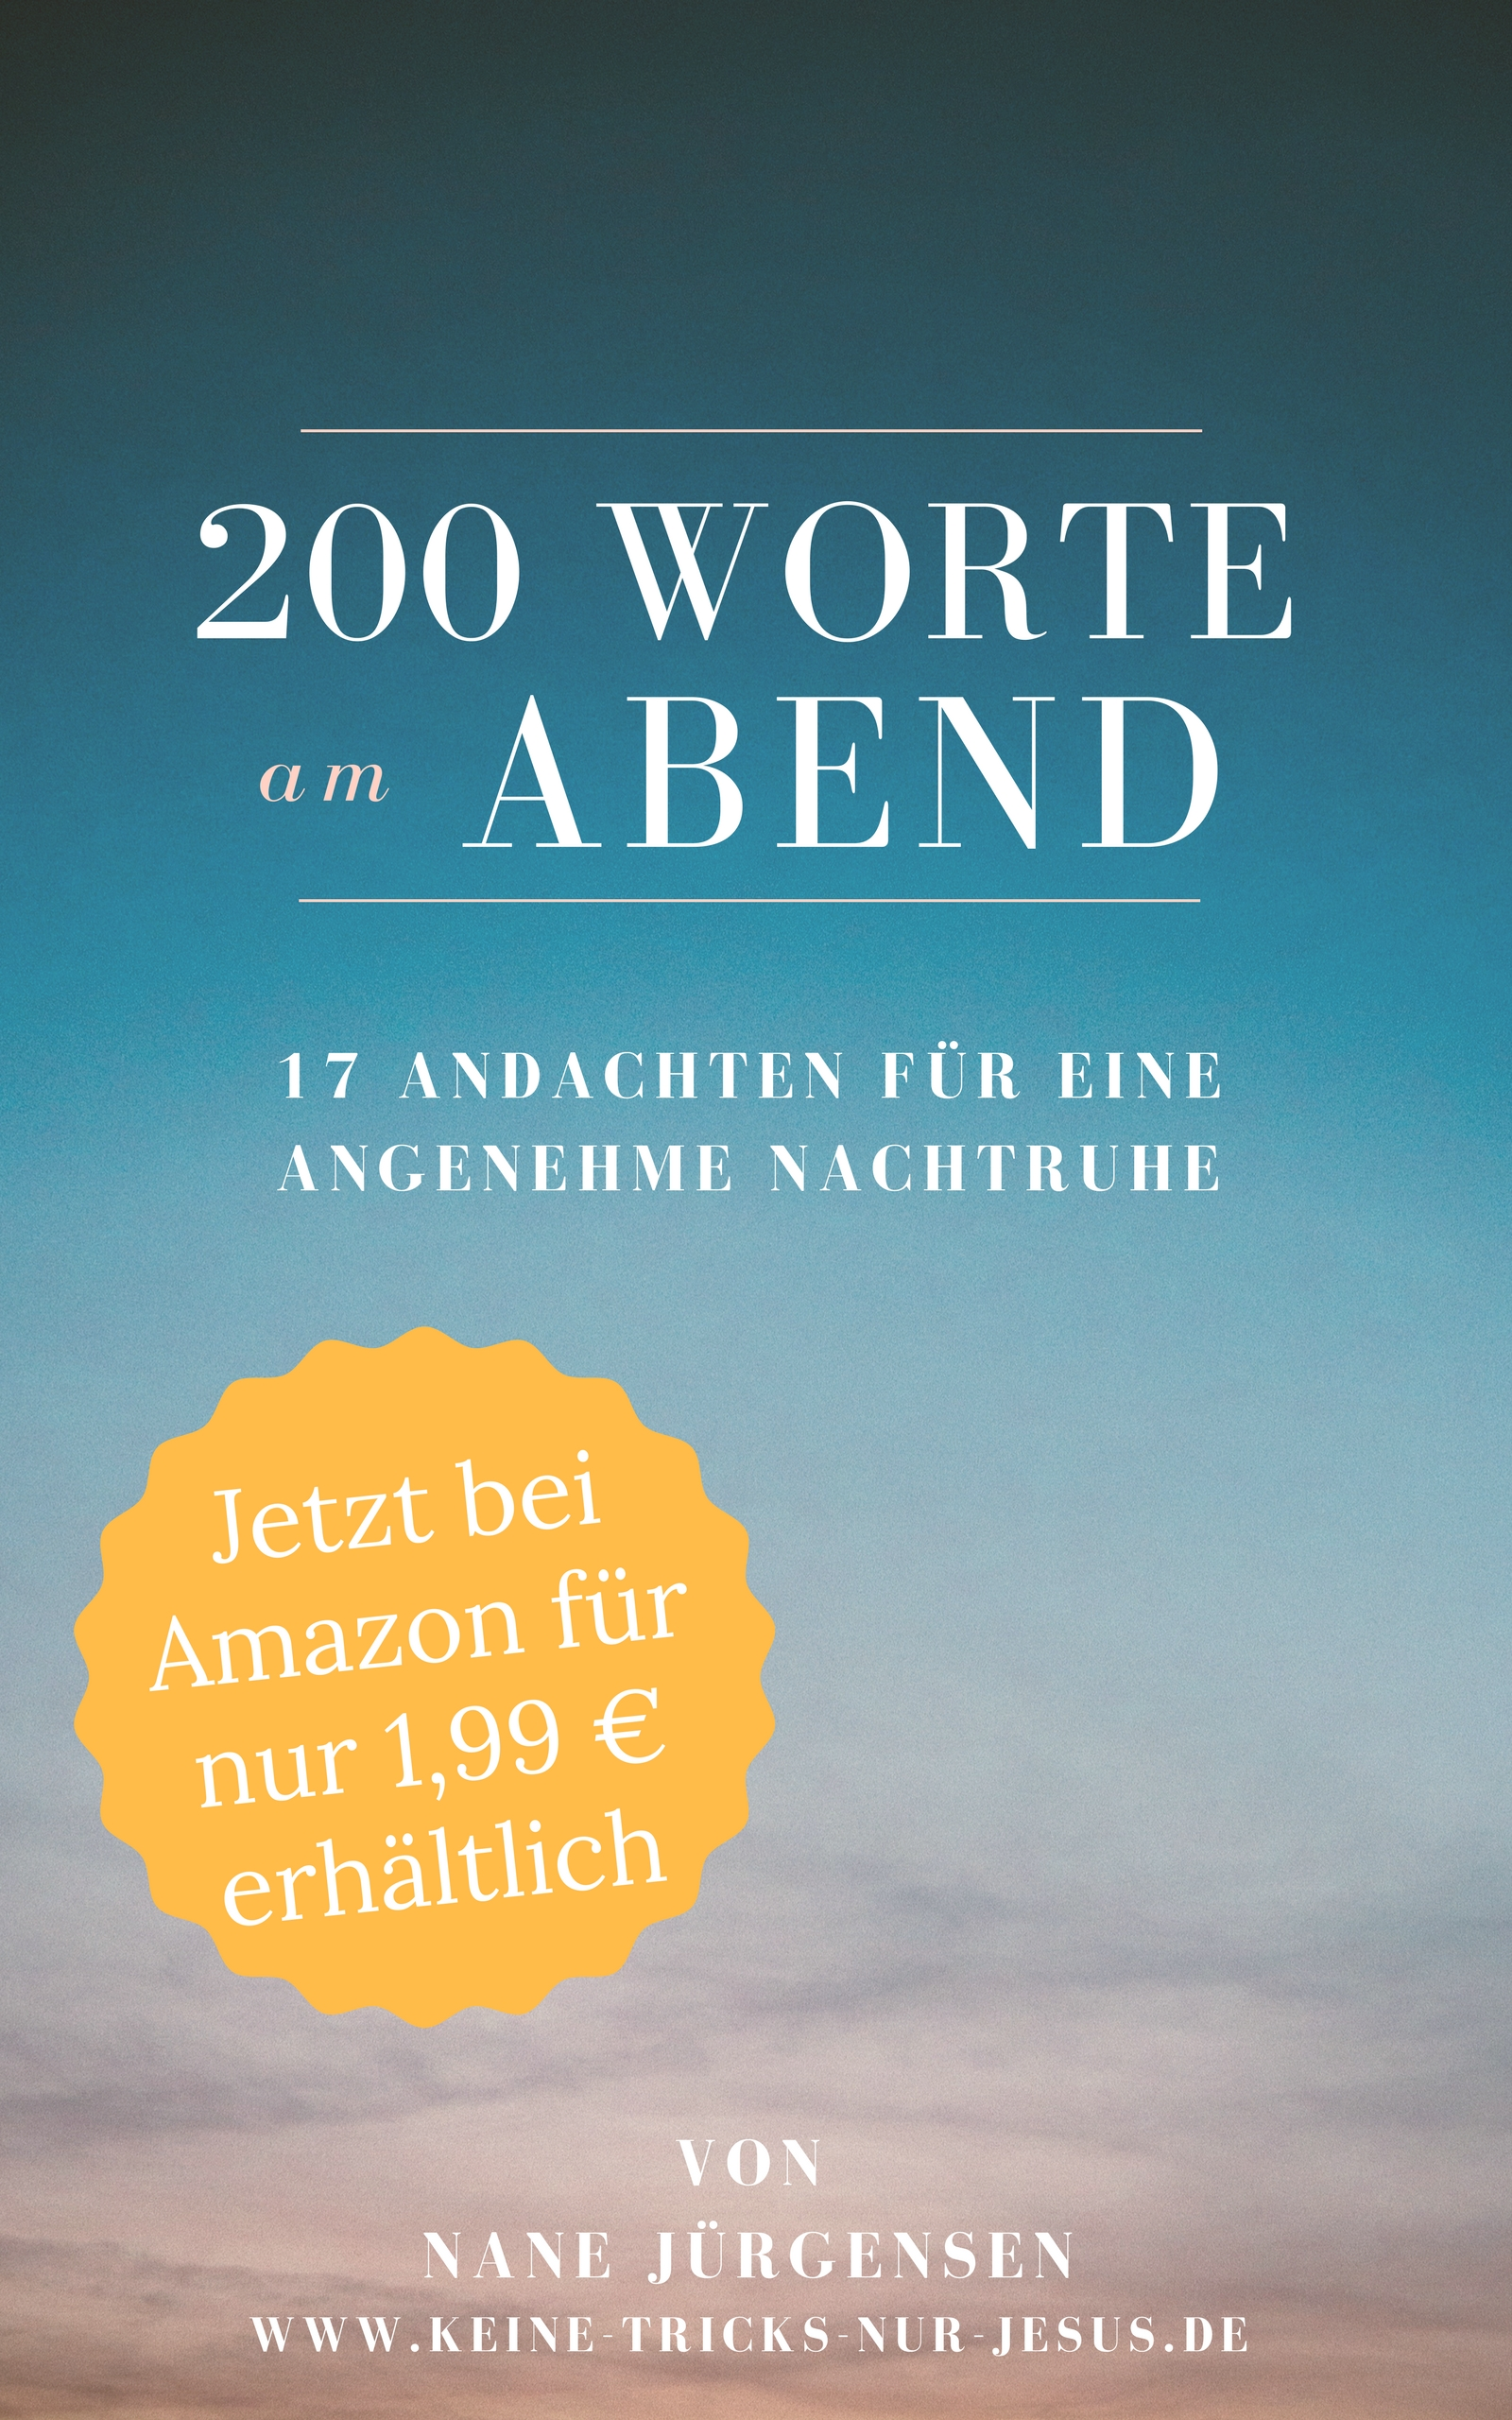 KTNJ eBook bei Amazon